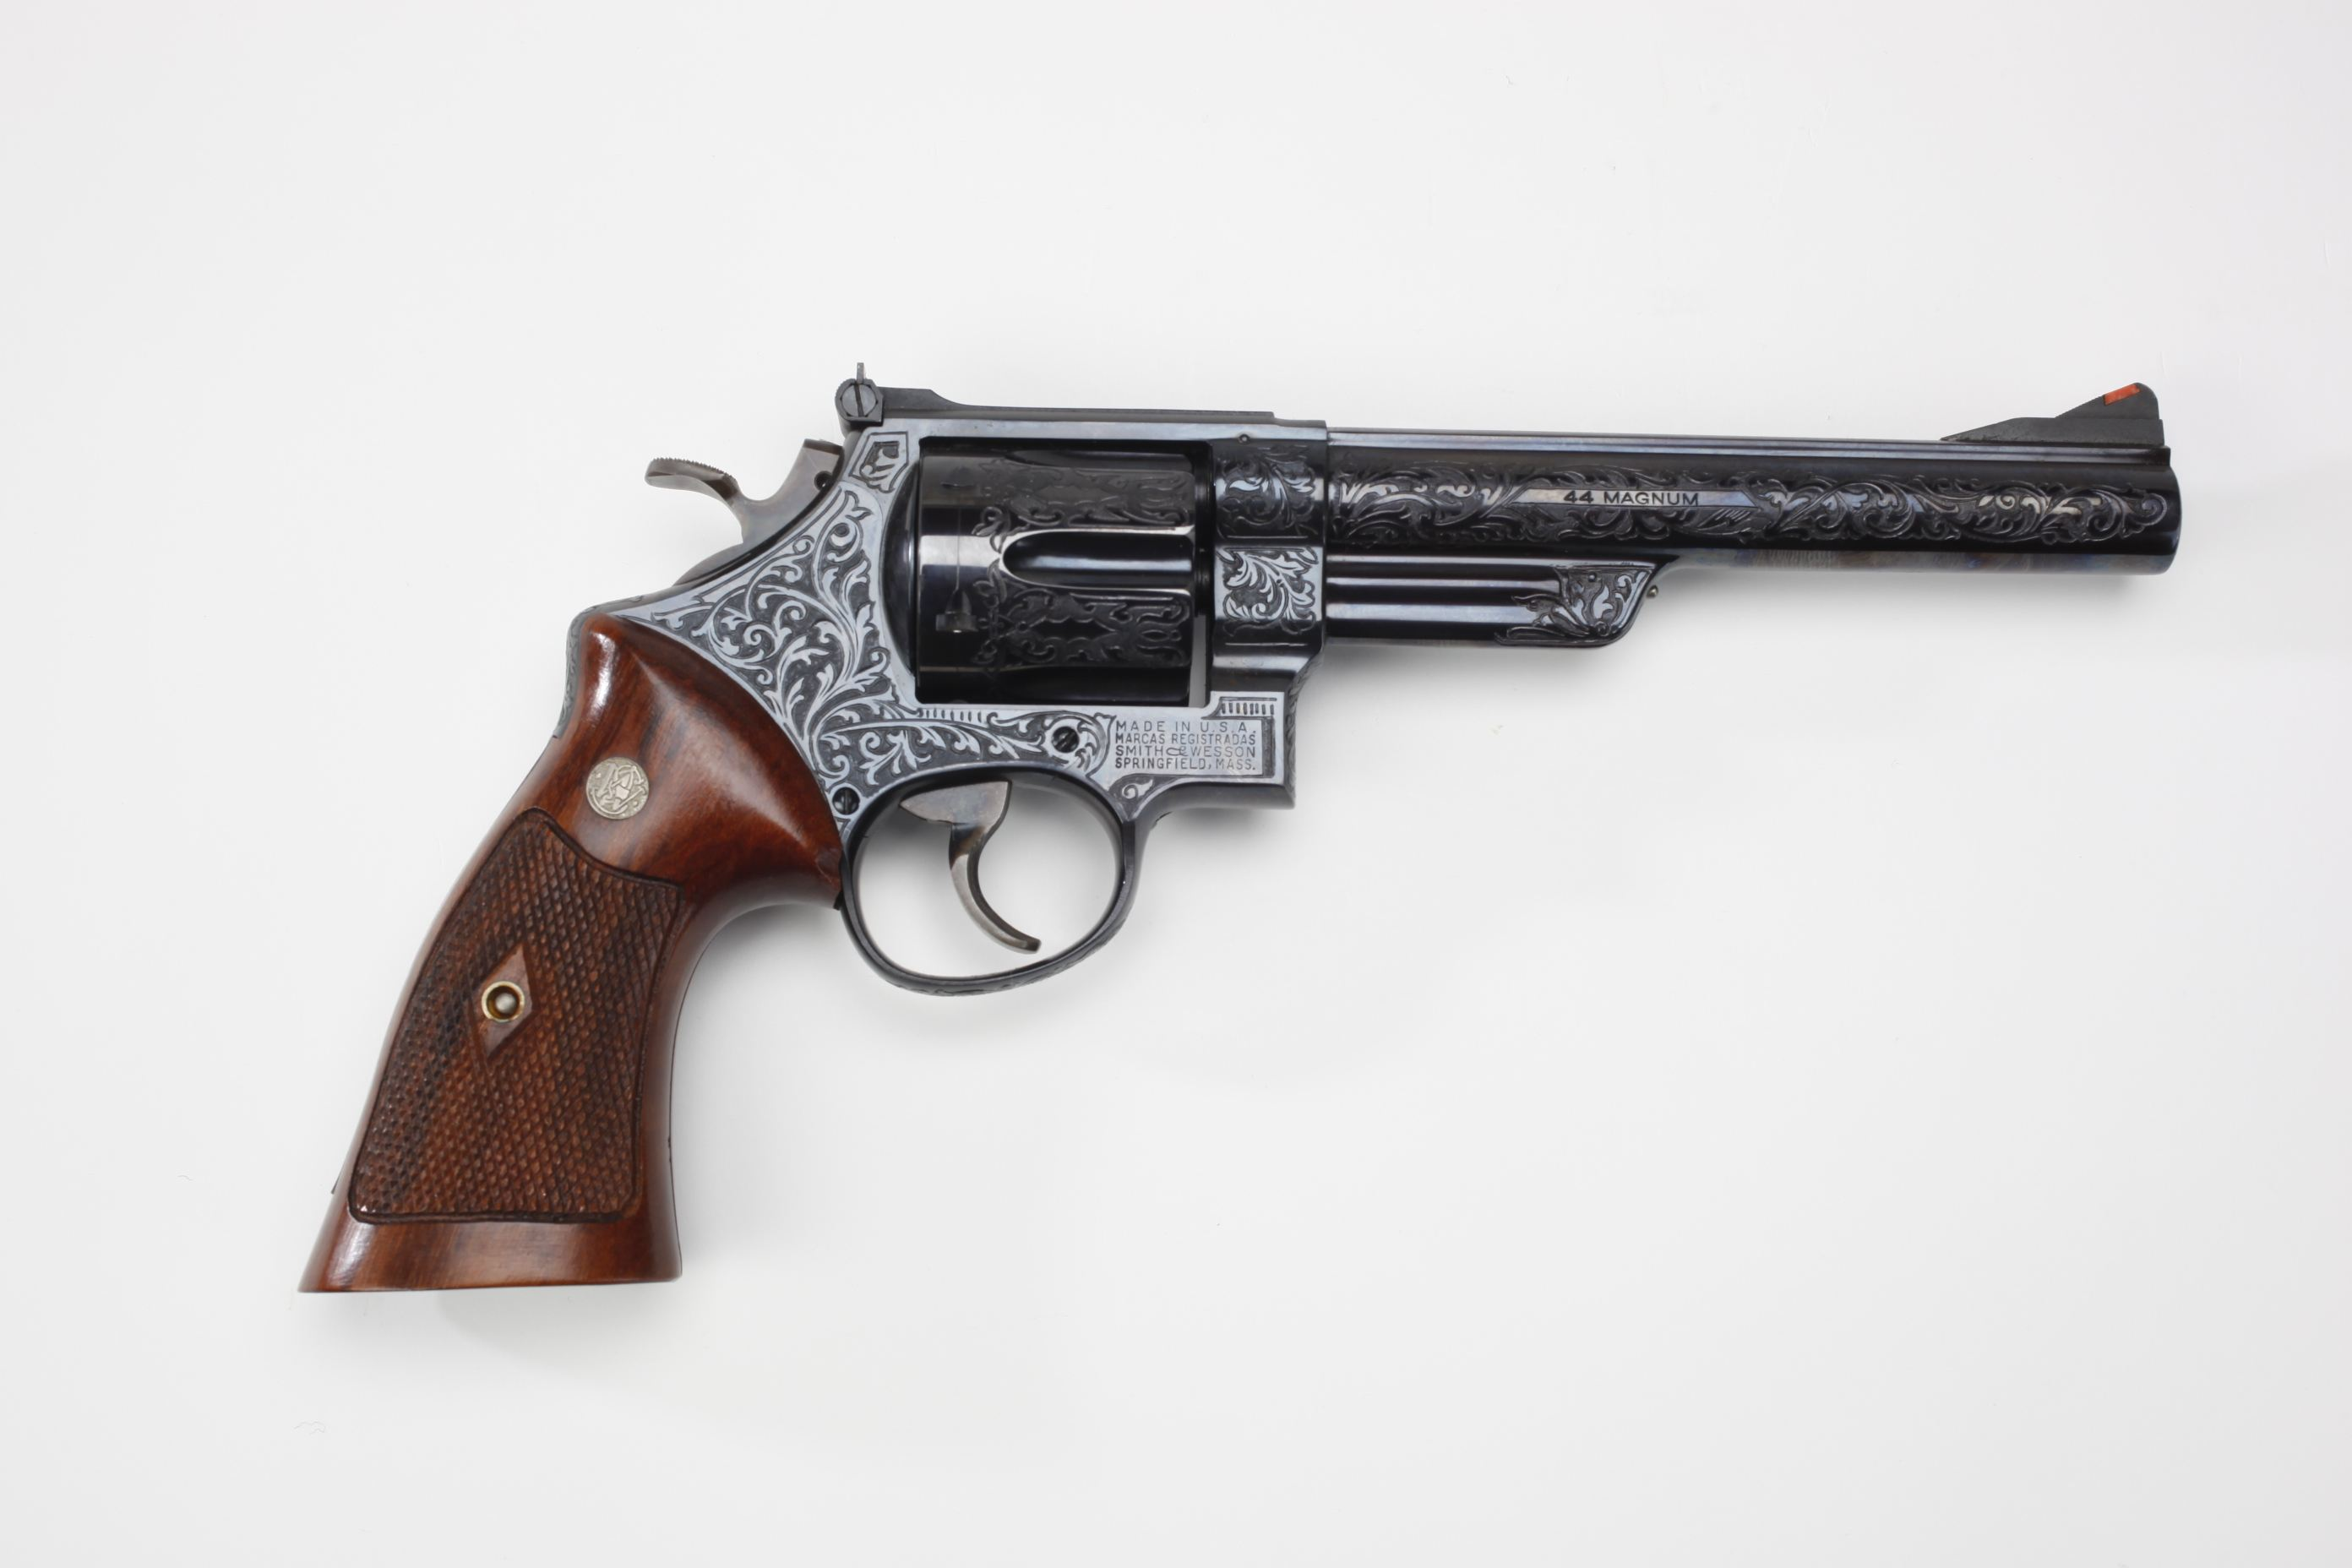 Smith & Wesson Model 29 Double-Action Revolver